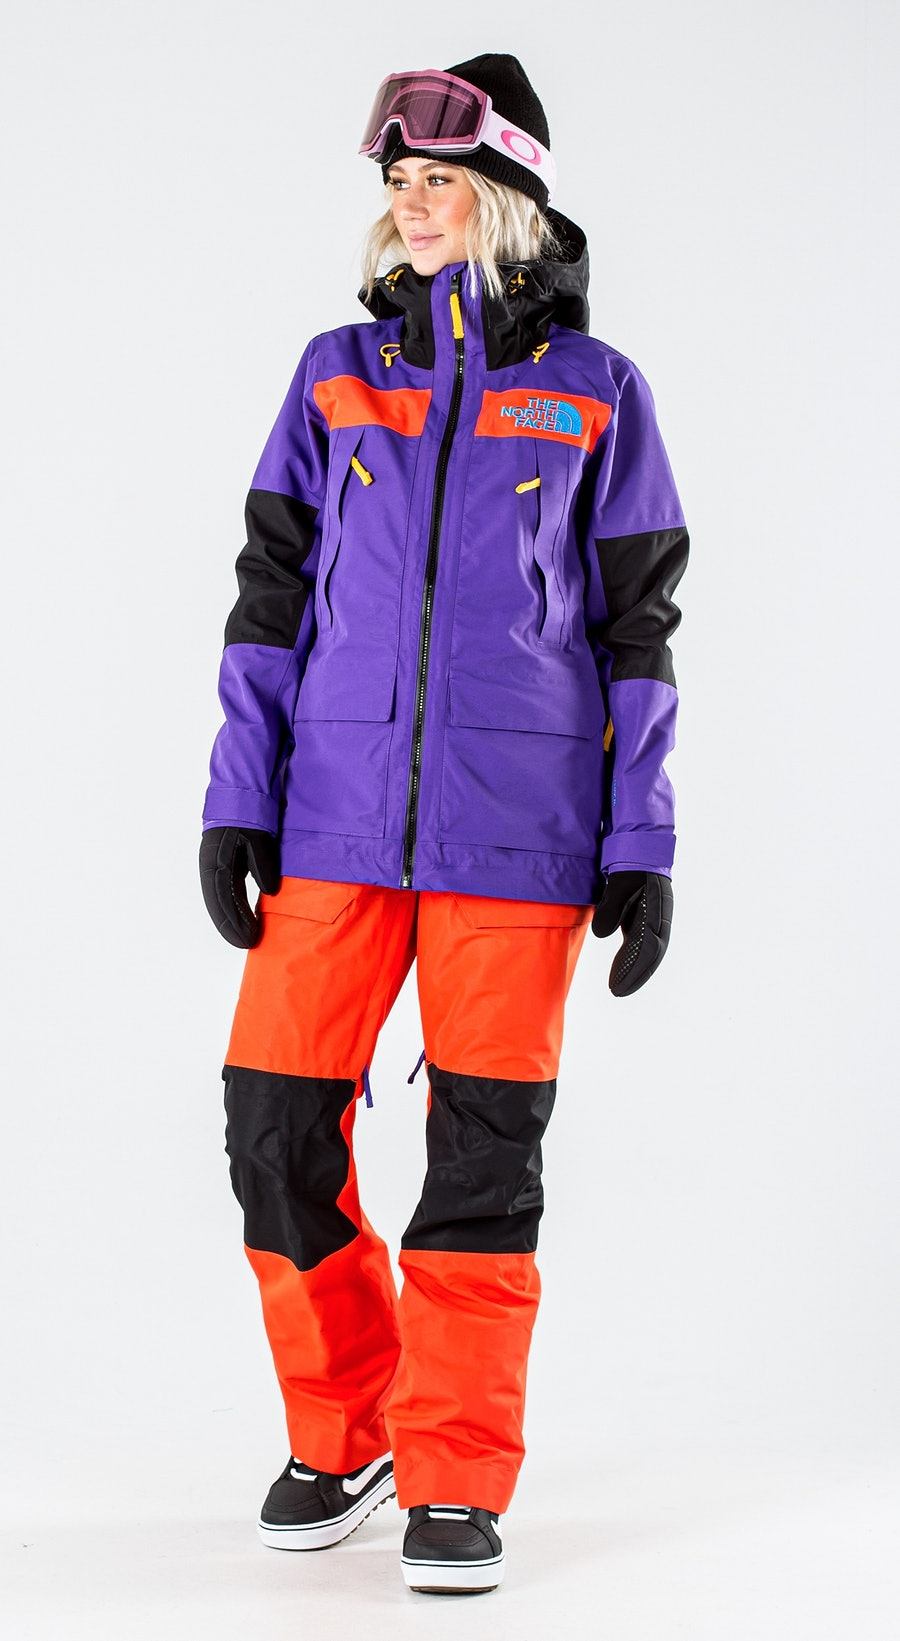 The North Face Team Kit Peak Purple/Flare/Tnf Blk Vêtements de Snowboard  Multi